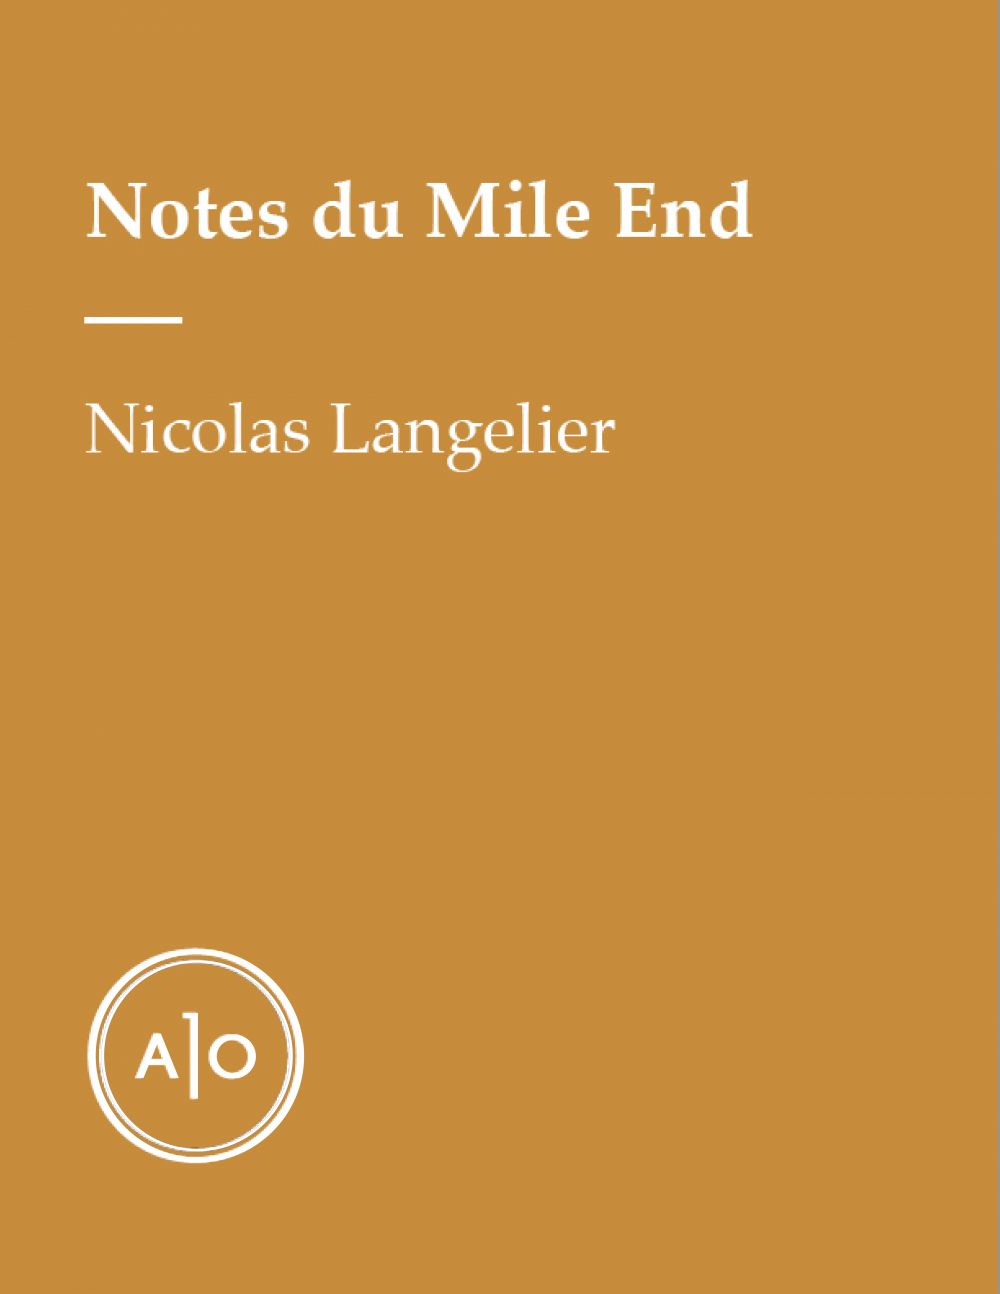 Notes du Mile End